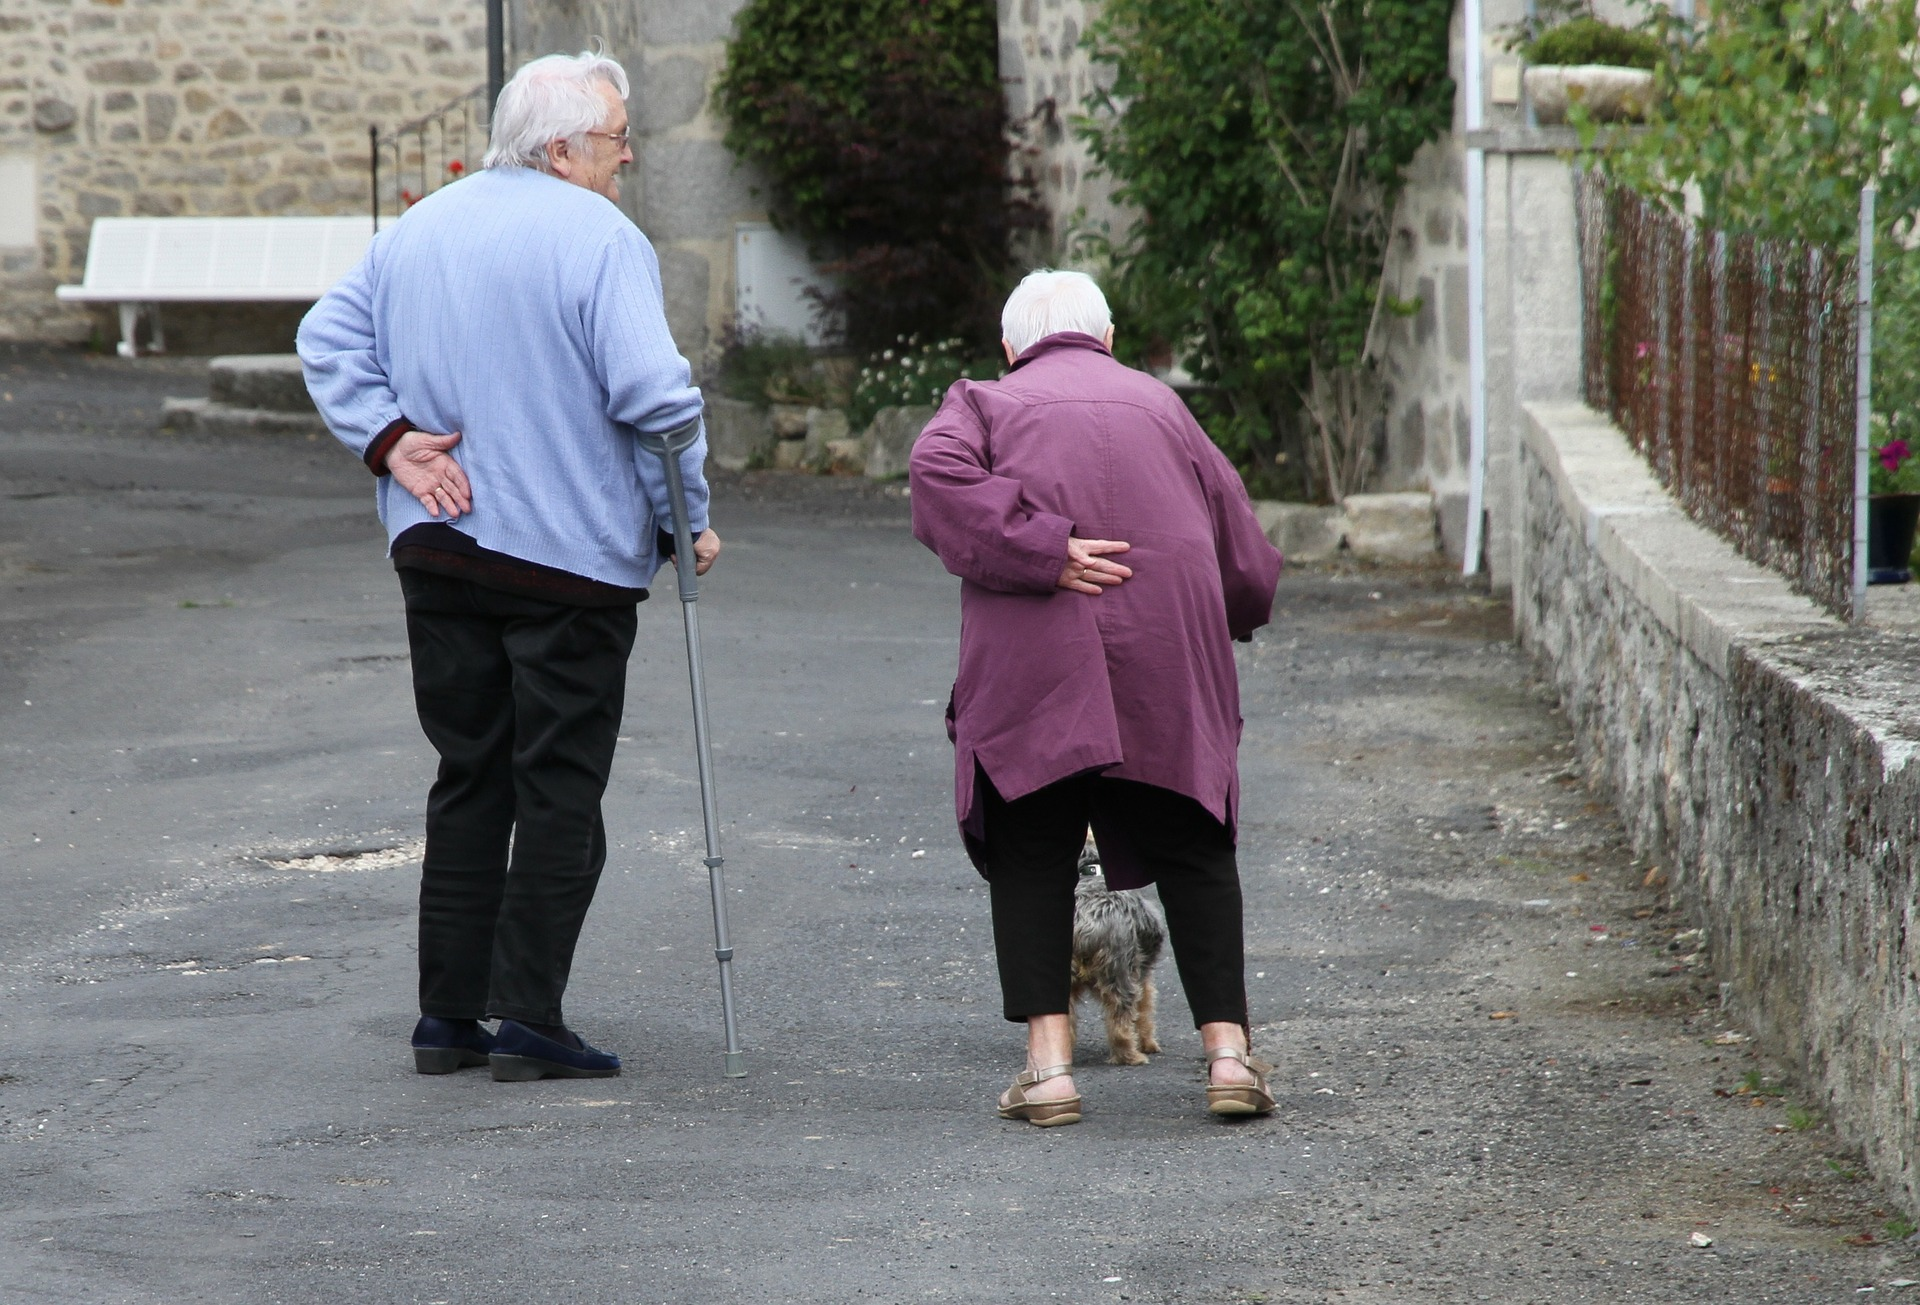 elderly man and woman walking on the road with a dog